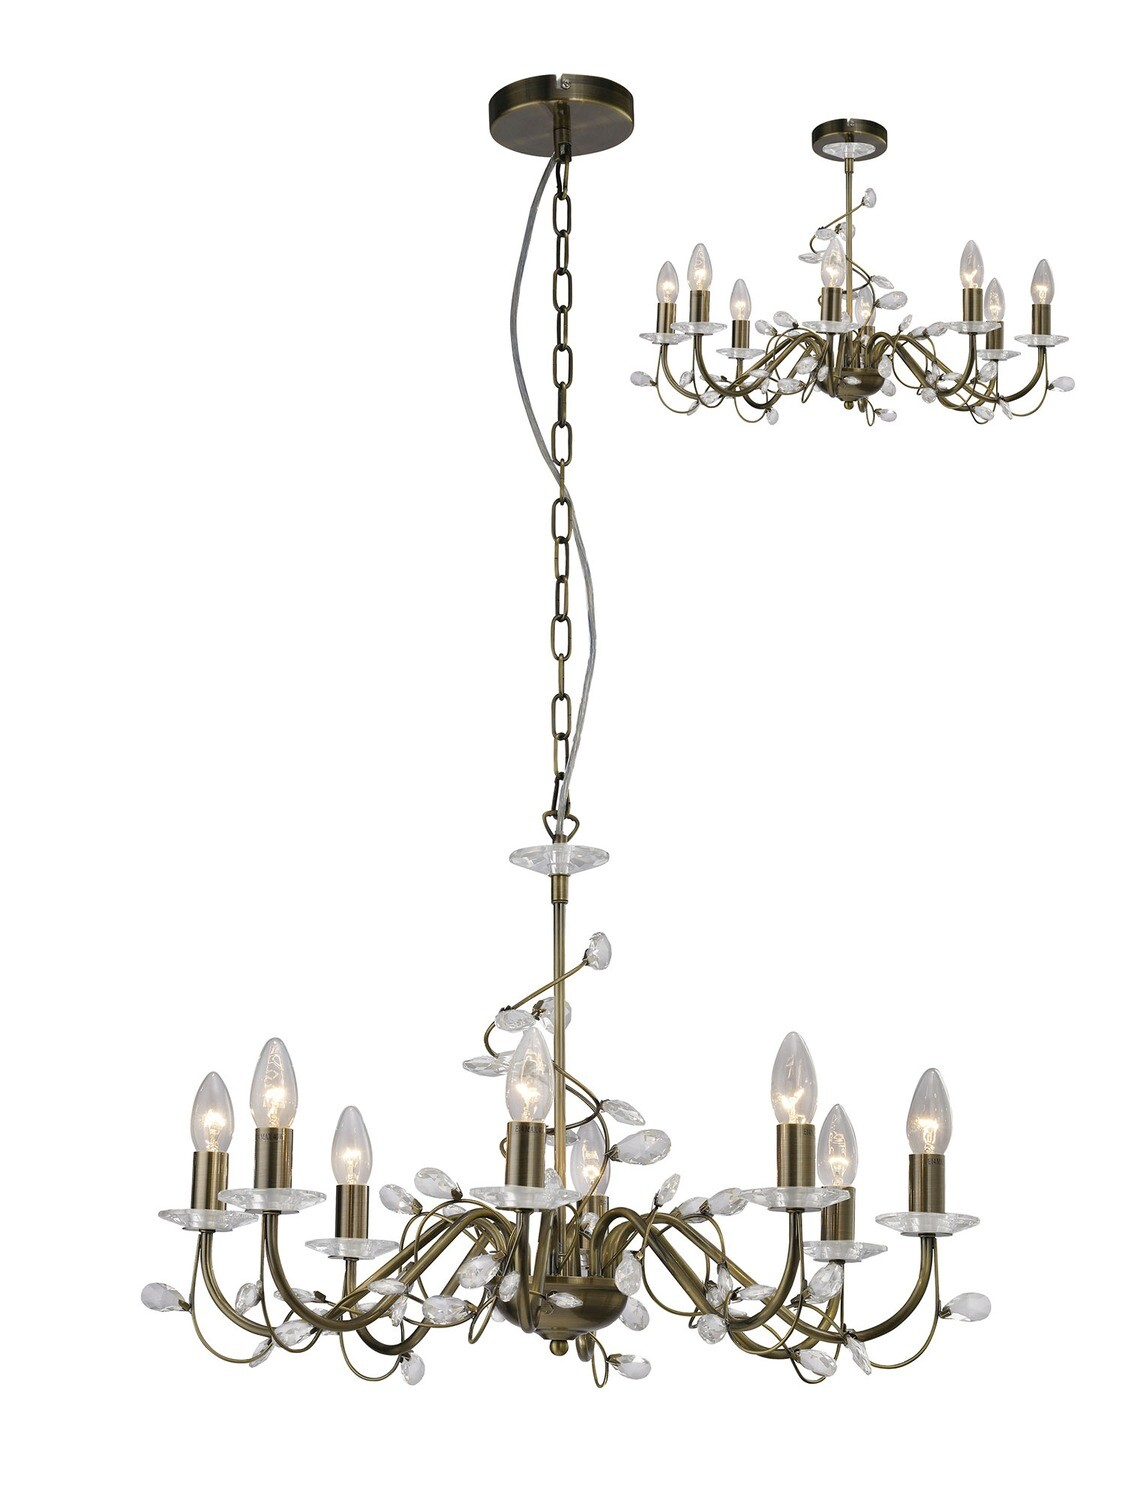 Willow Pendant WITHOUT SHADE 8 Light E14 Antique Brass/Crystal